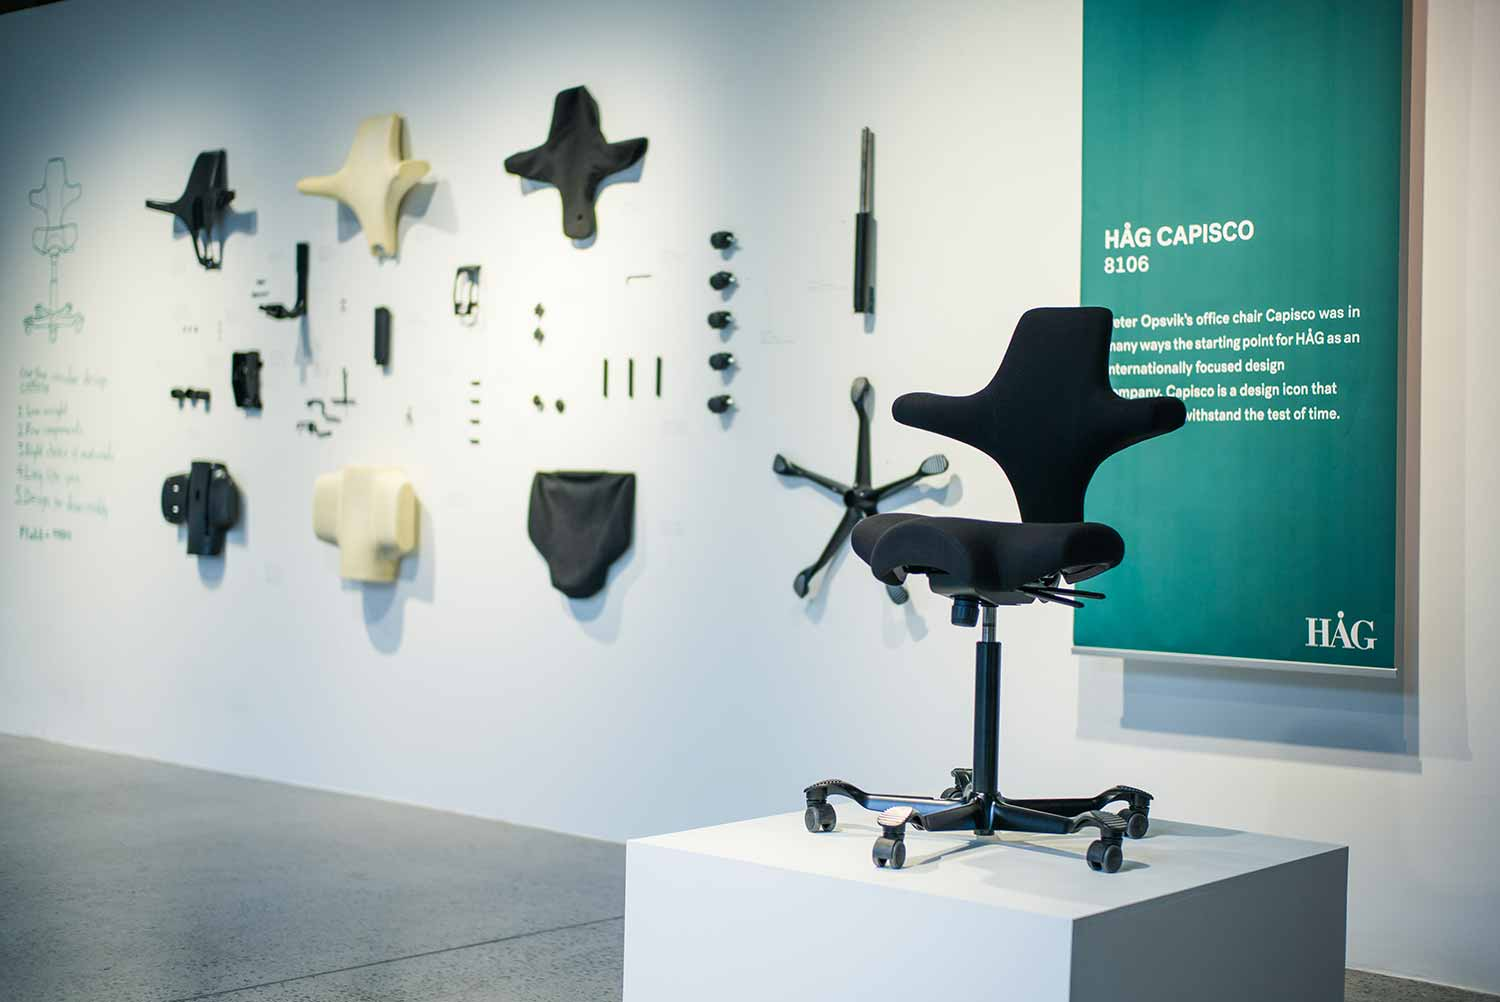 Designer Saturday oslo sustainable furniture design HÅG Capisco black desk chair environment